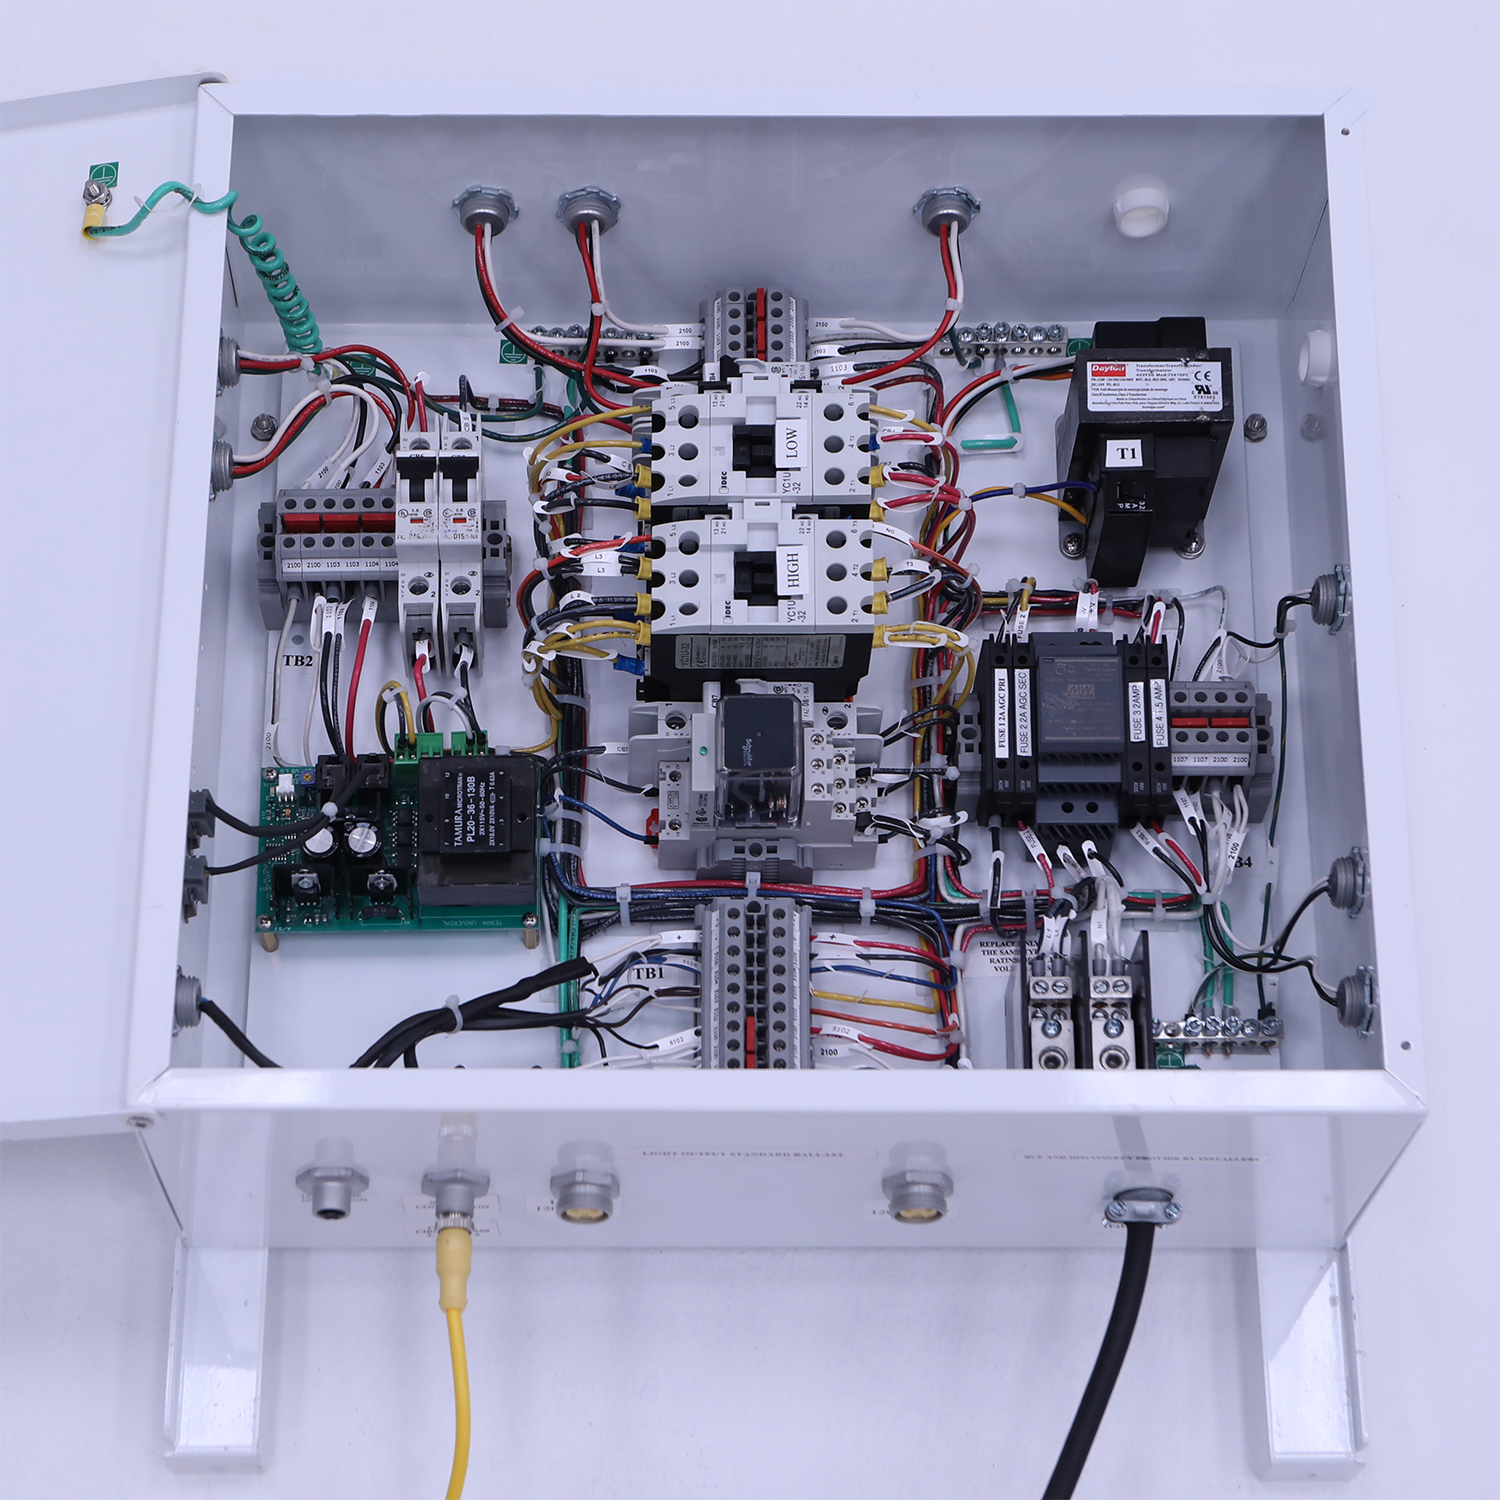 Power distribution module for modular cleanroom